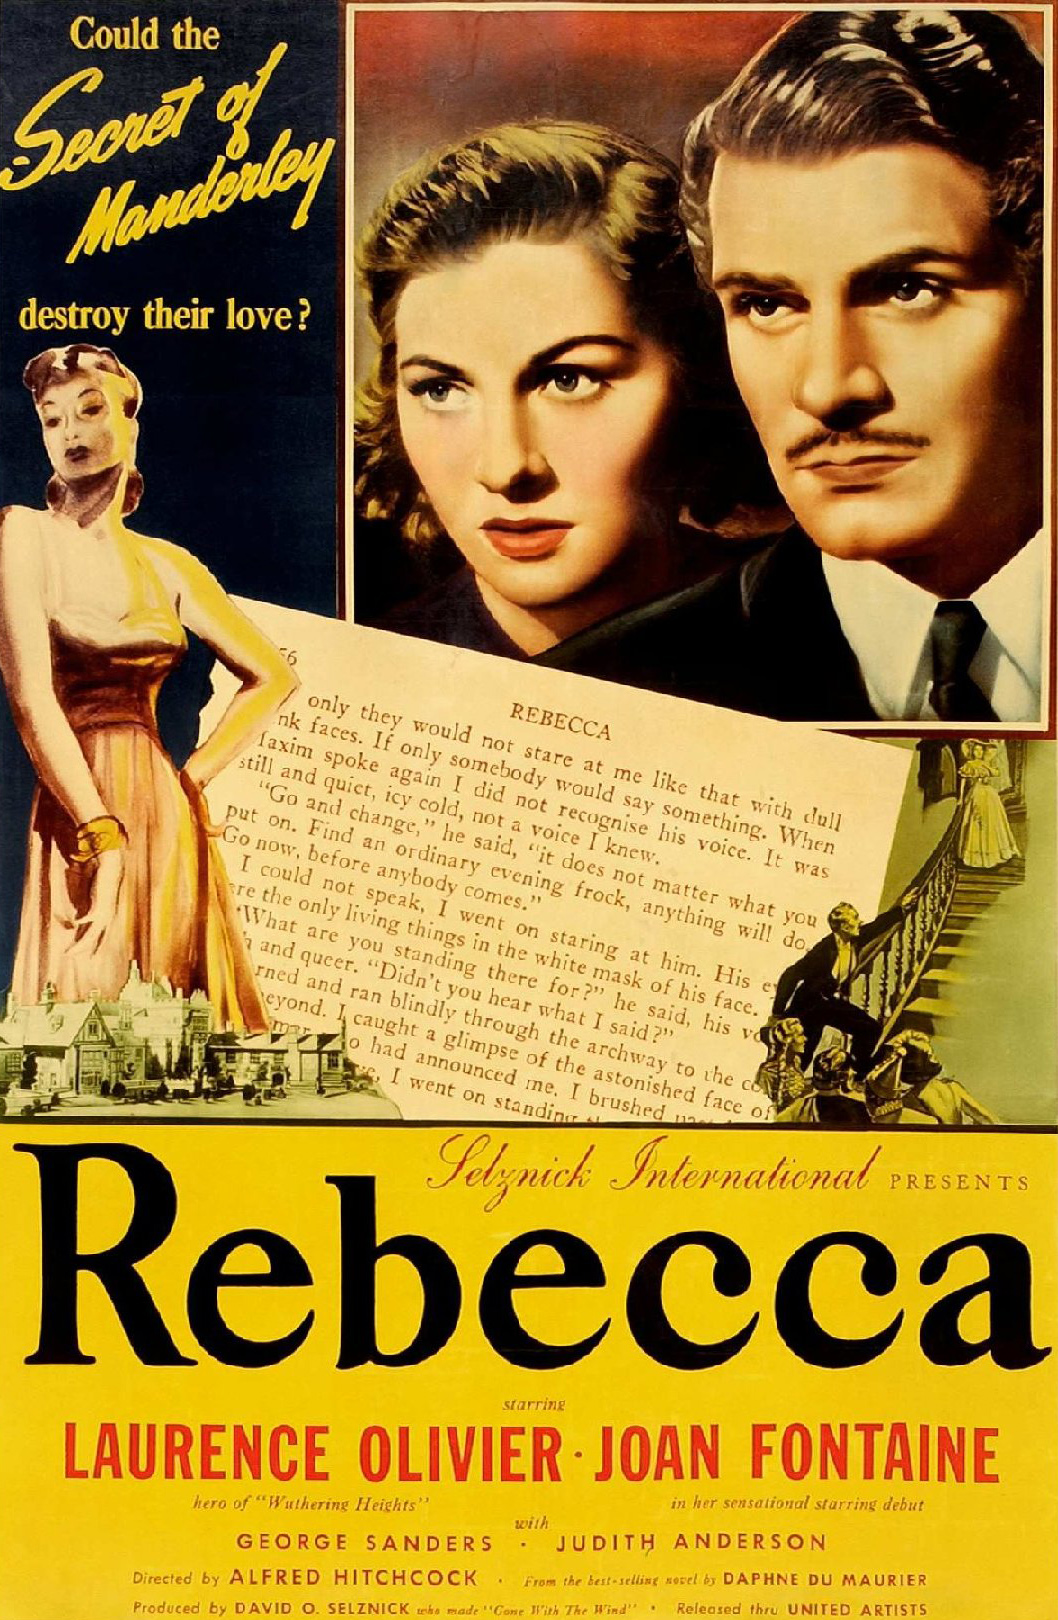 critique of alfred hitchcocks movie rebecca essay Gathered here for the first time are alfred hitchcock's reflections on his own life  and  of largely unknown and formerly inaccessible interviews and essays,  hitchcock  on a career that spanned decades and transformed the history of the  cinema  unlike some of the complex critical commentary that has emerged on  his life.